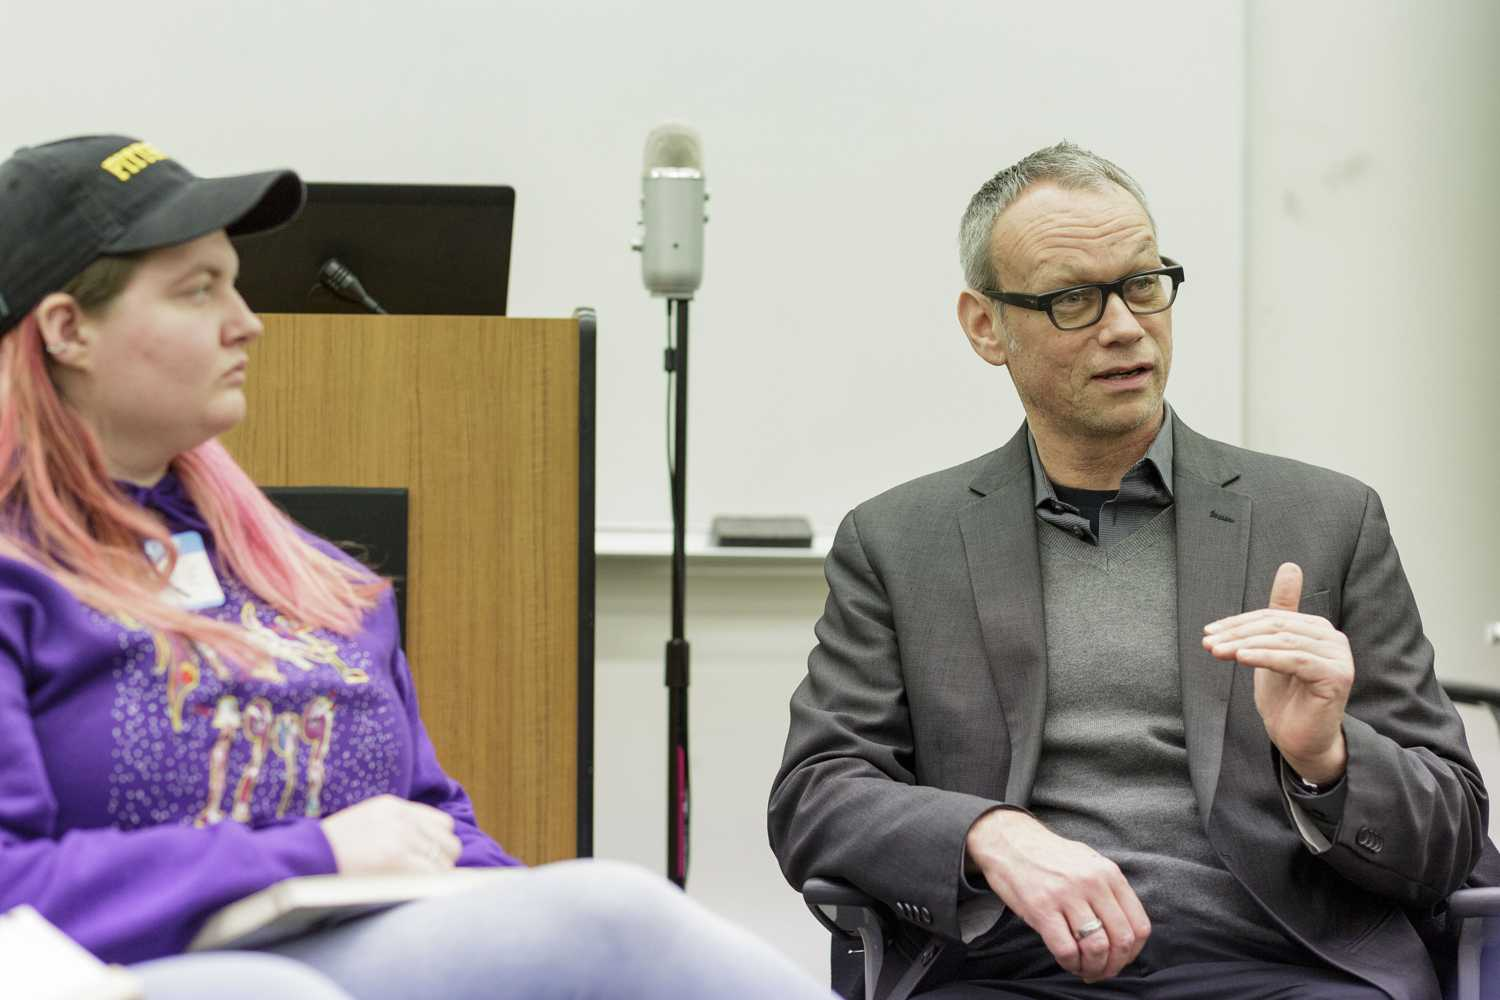 """Randall Halle, a professor of German film and cultural studies, discusses his former financial struggles as a student during Wednesday's """"Strengthening Our Safety Net for Students"""" event. (Photo by Thomas Yang 